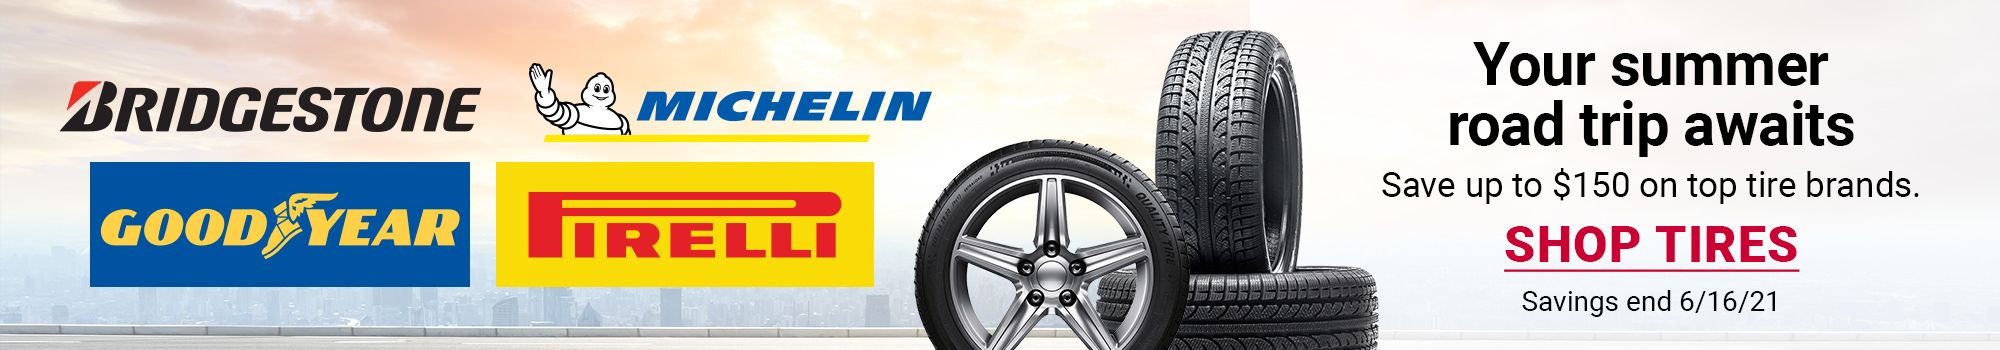 Your summer road trip awaits. Save up to $150 on top tire brands. Click to SHOP TIRES. Savings end 5/26/21.